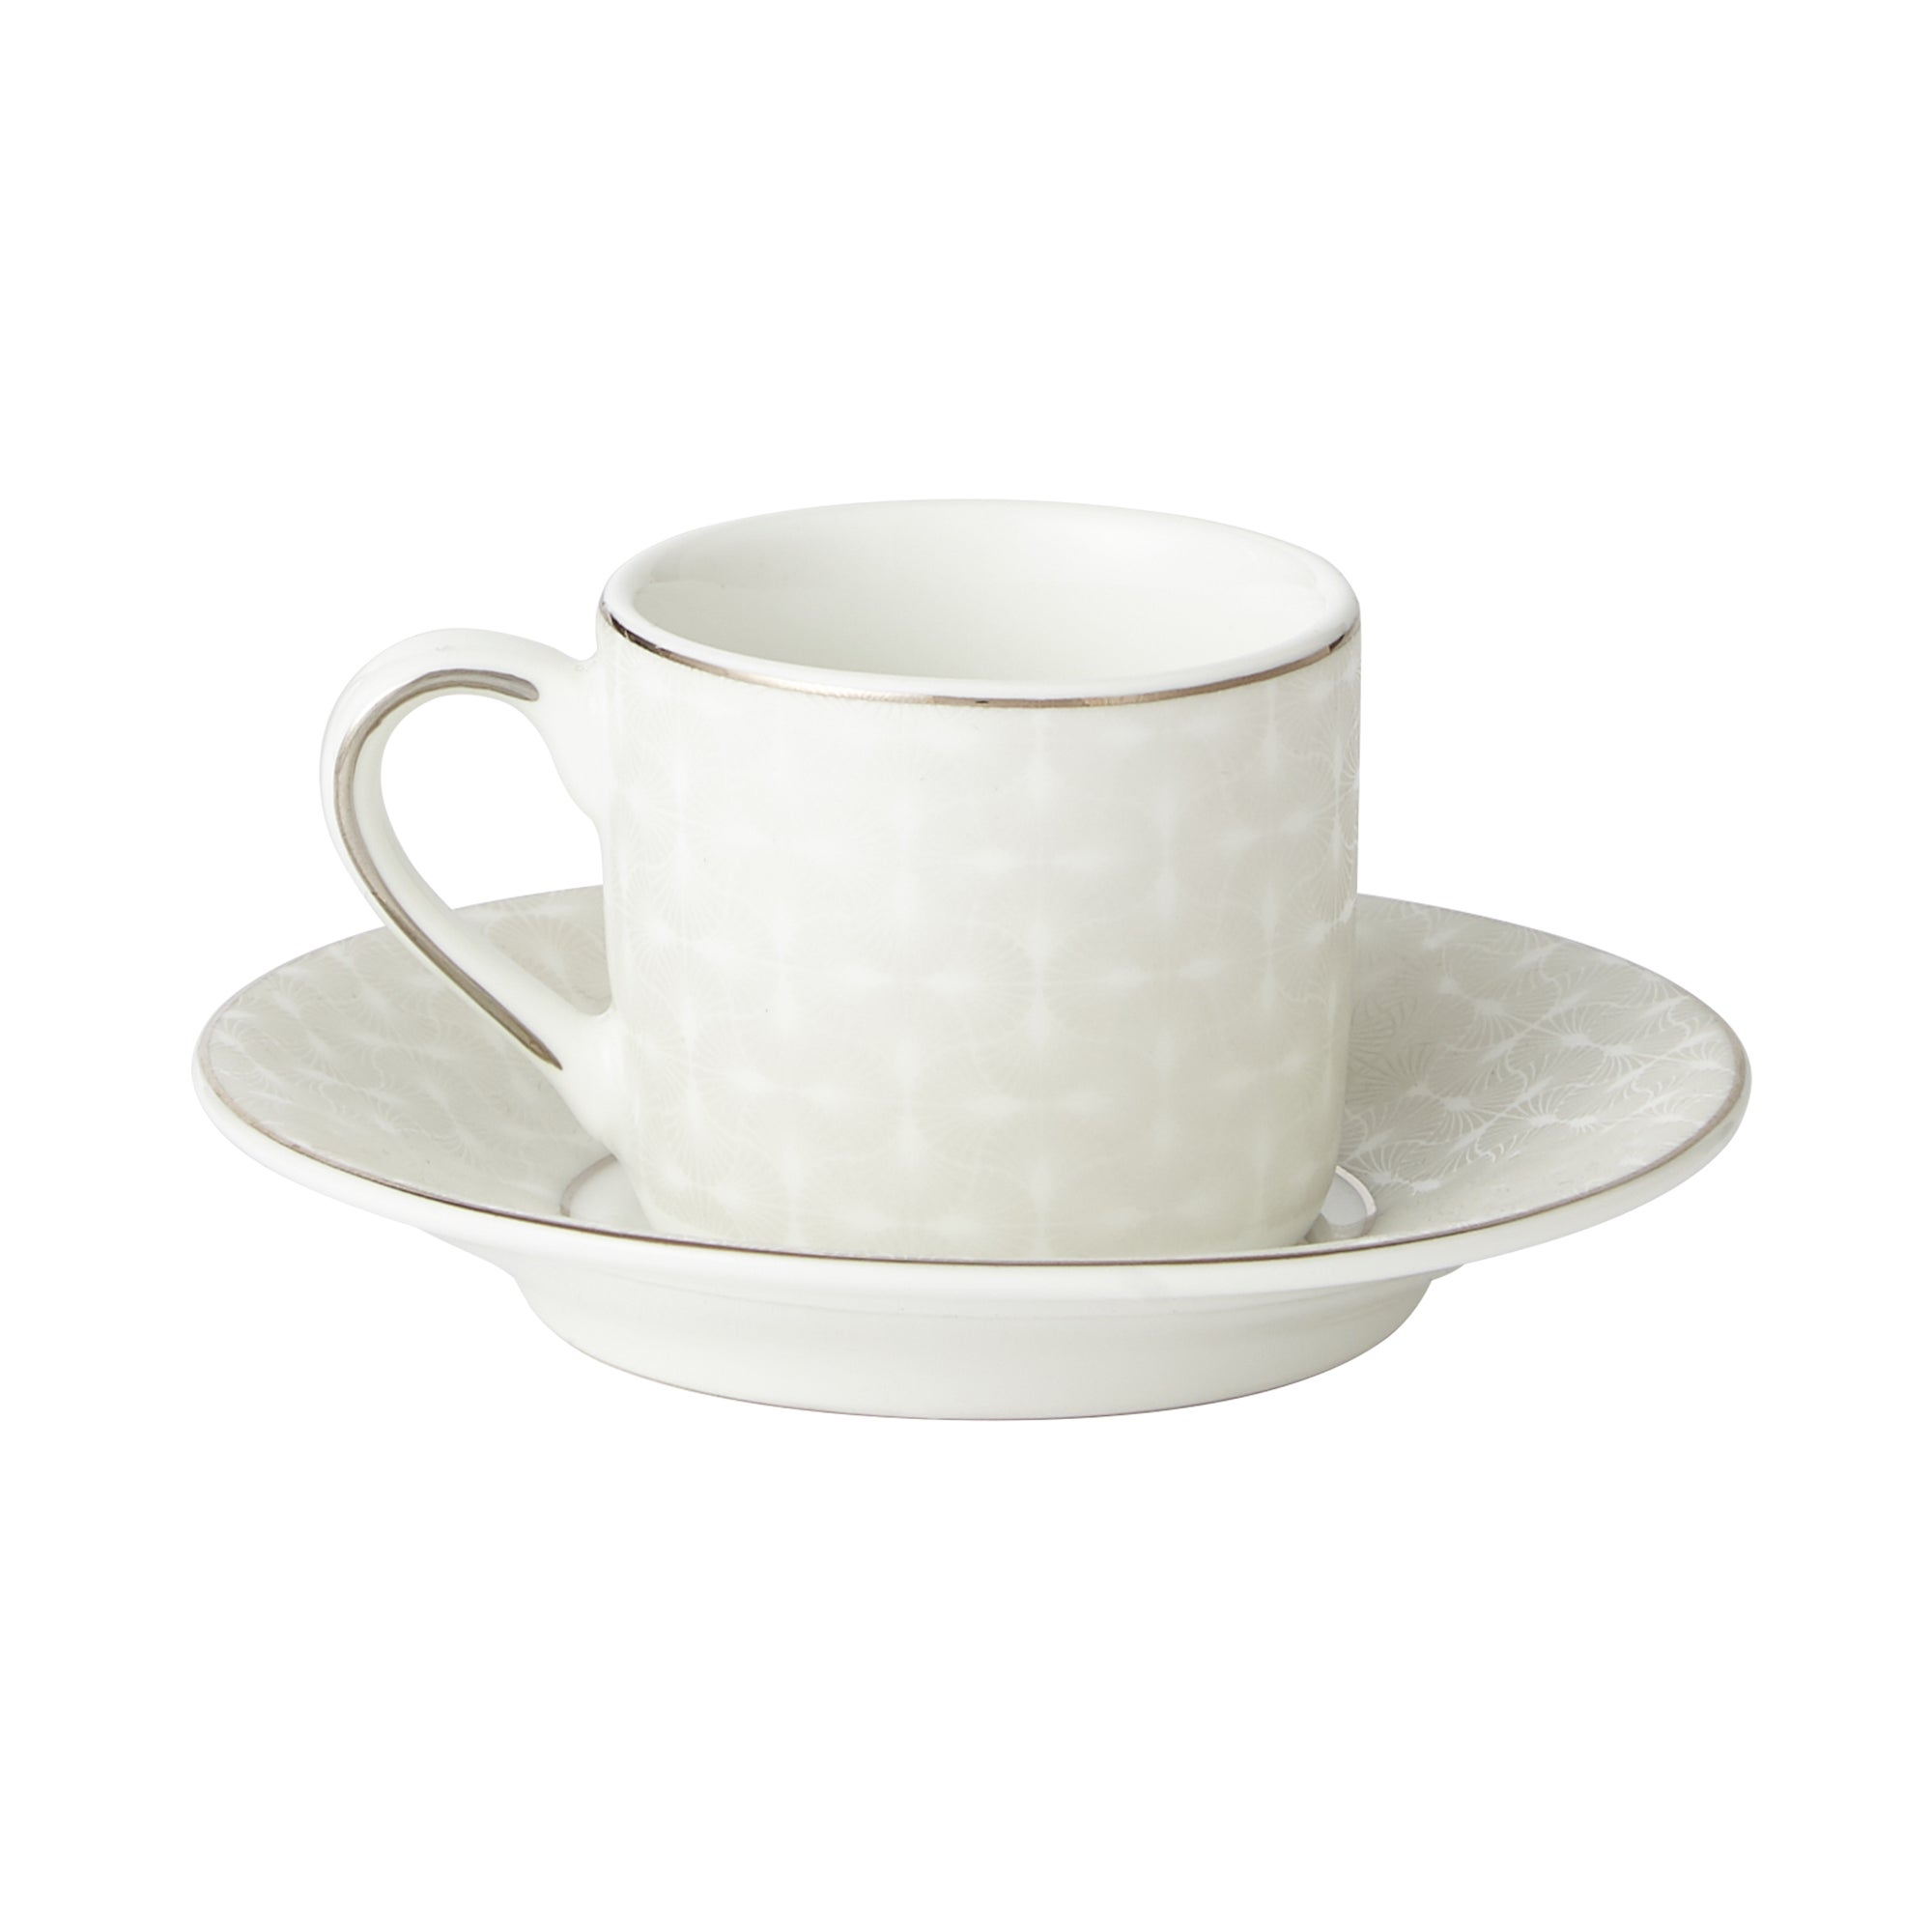 5A Fifth Avenue Grace Silver Pack of 2 Espresso Cup and Saucer Platinum